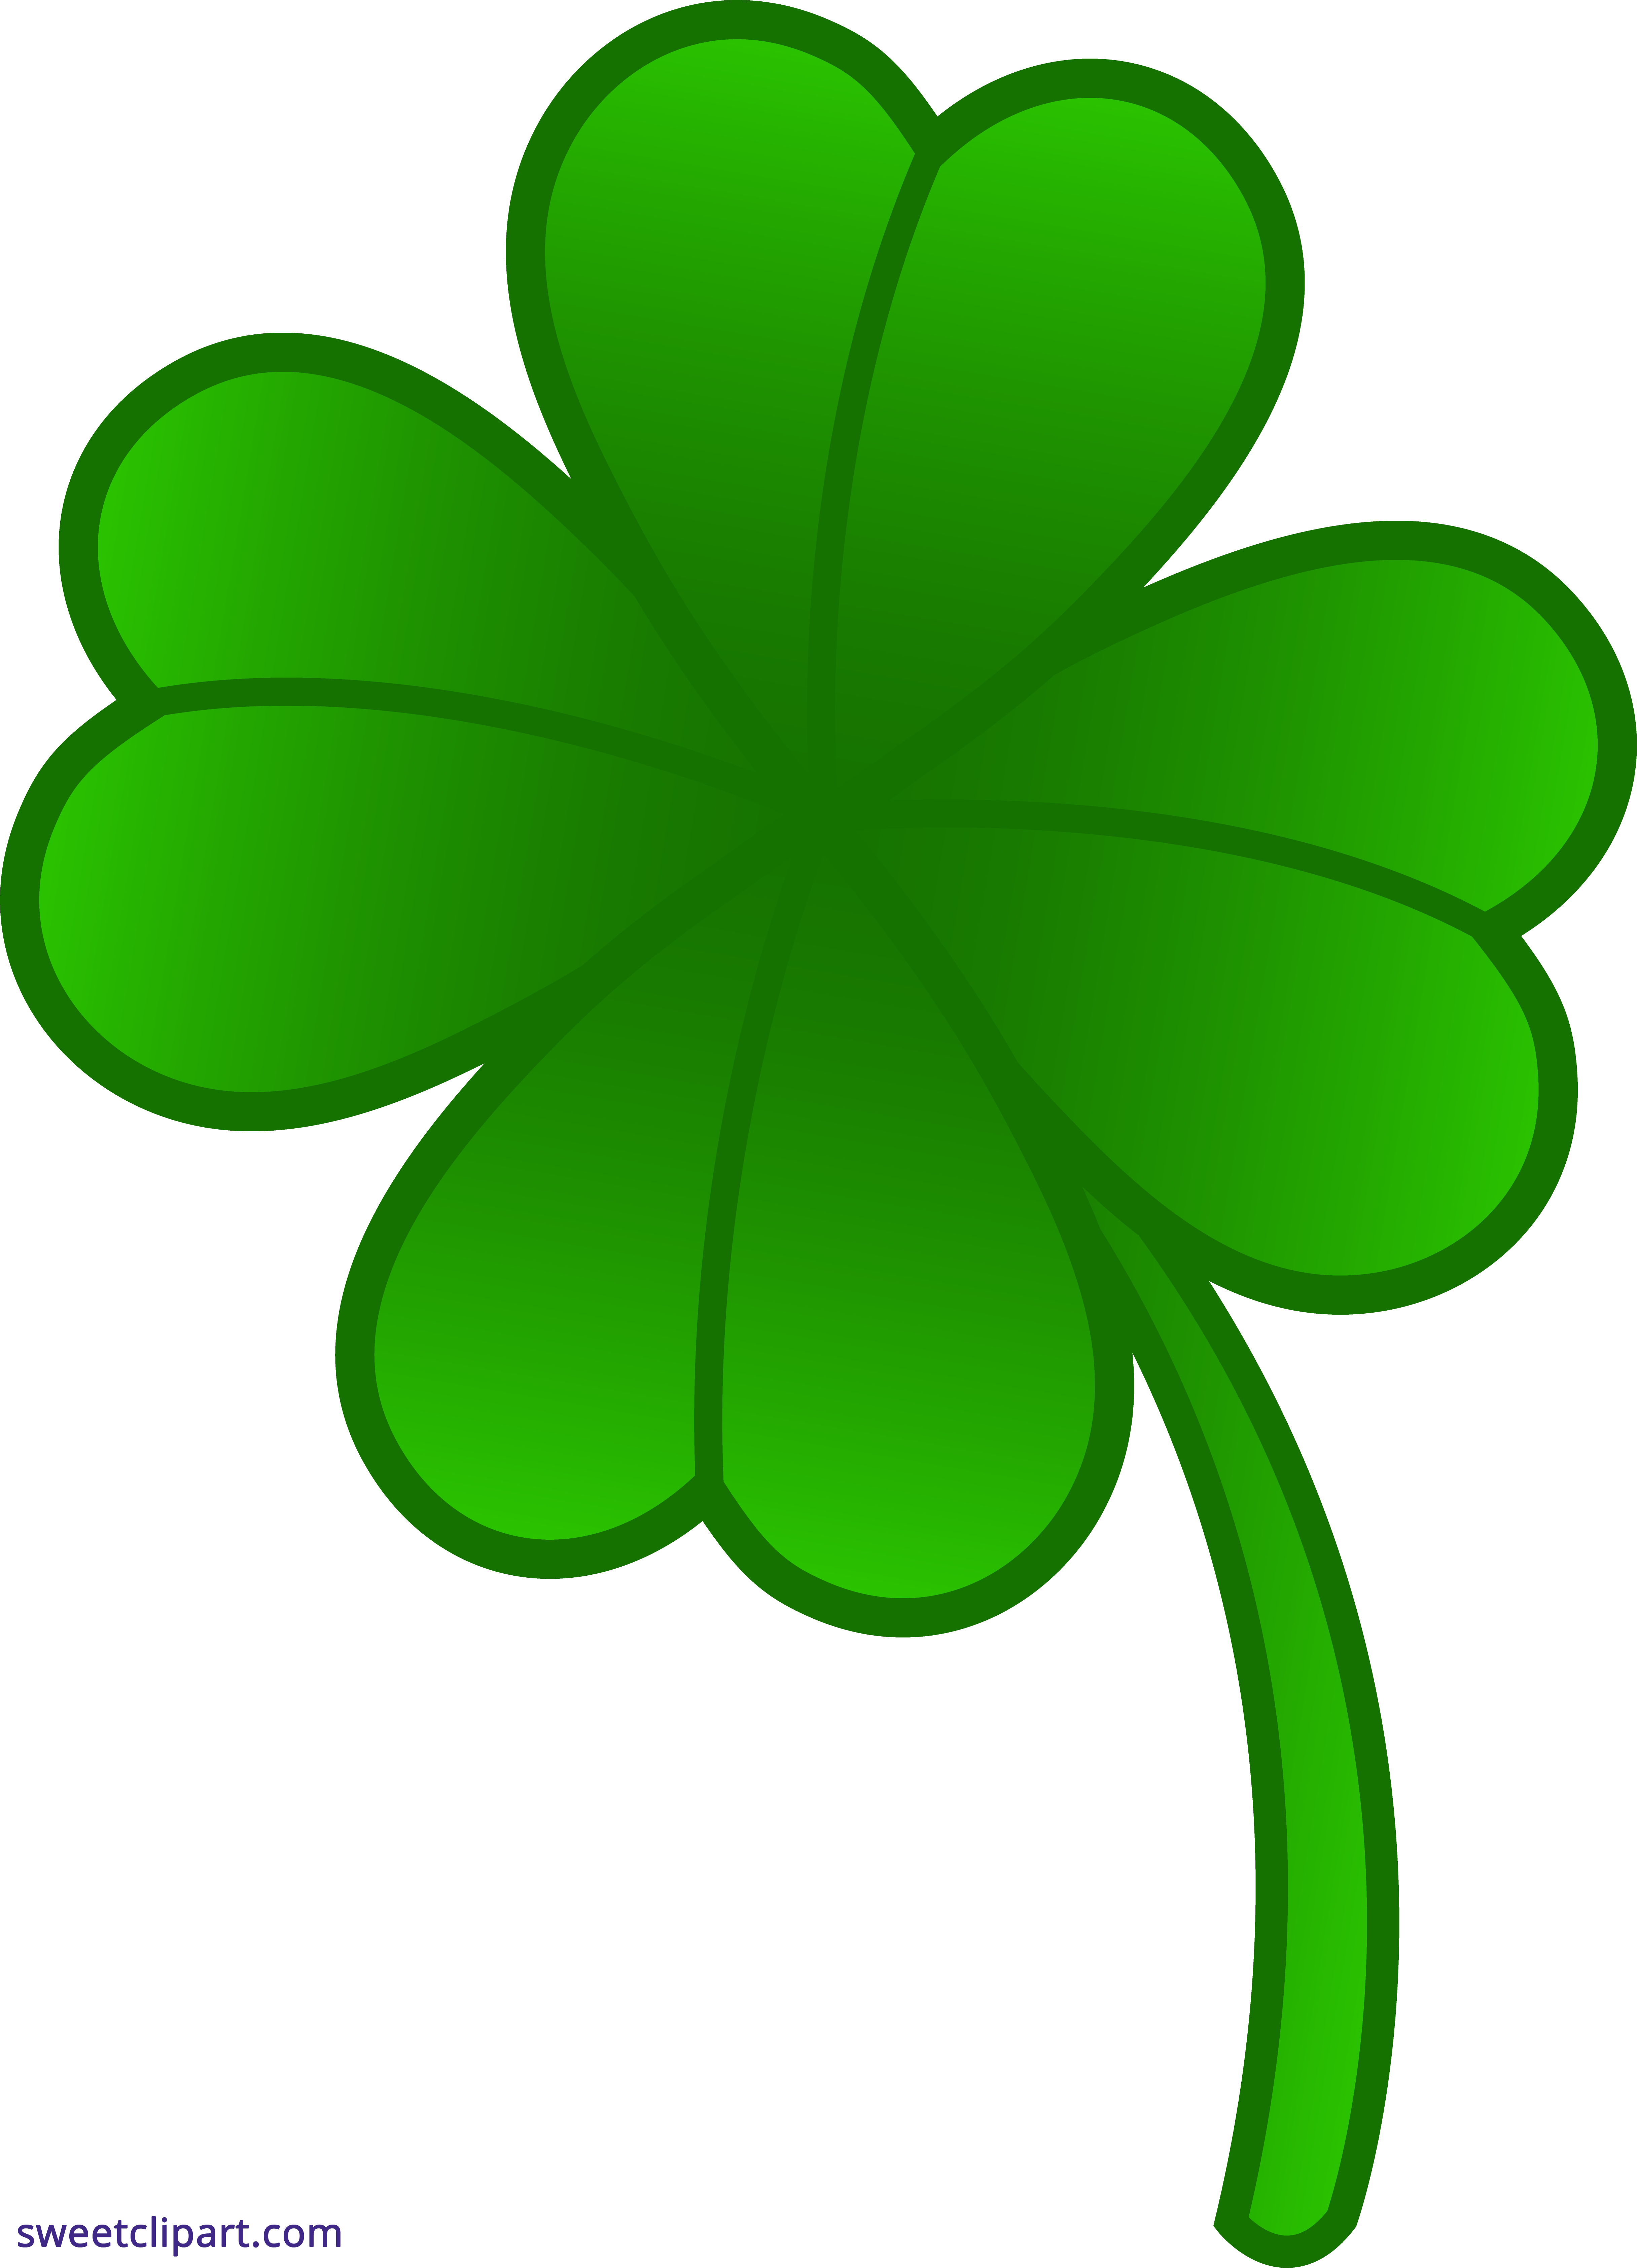 Real 4 leaf clover png. Four clipart sweet clip